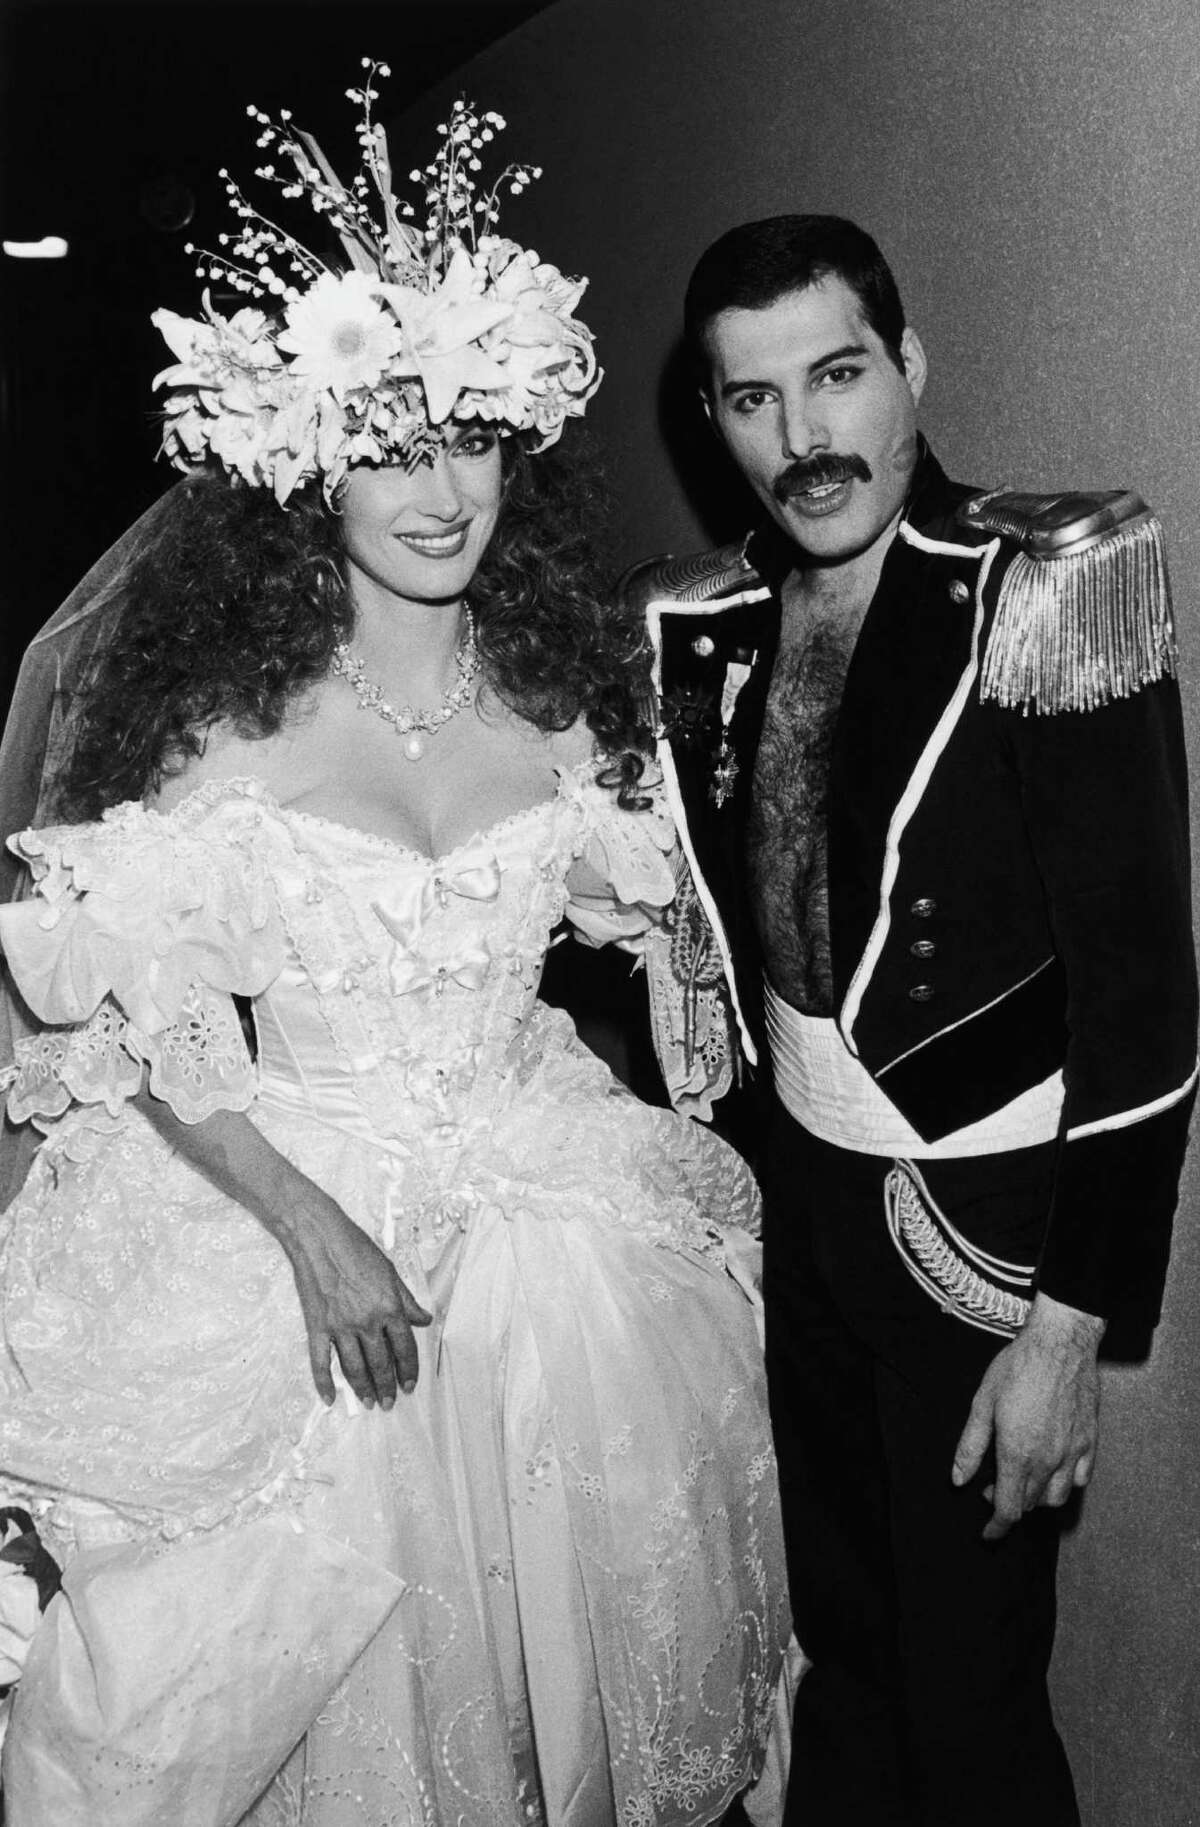 English actress Jane Seymour in a white ballgown with singer Freddie Mercury (1946 - 1991) of British rock group Queen in a military-style dress uniform during Fashion Aid, 6th November 1985.